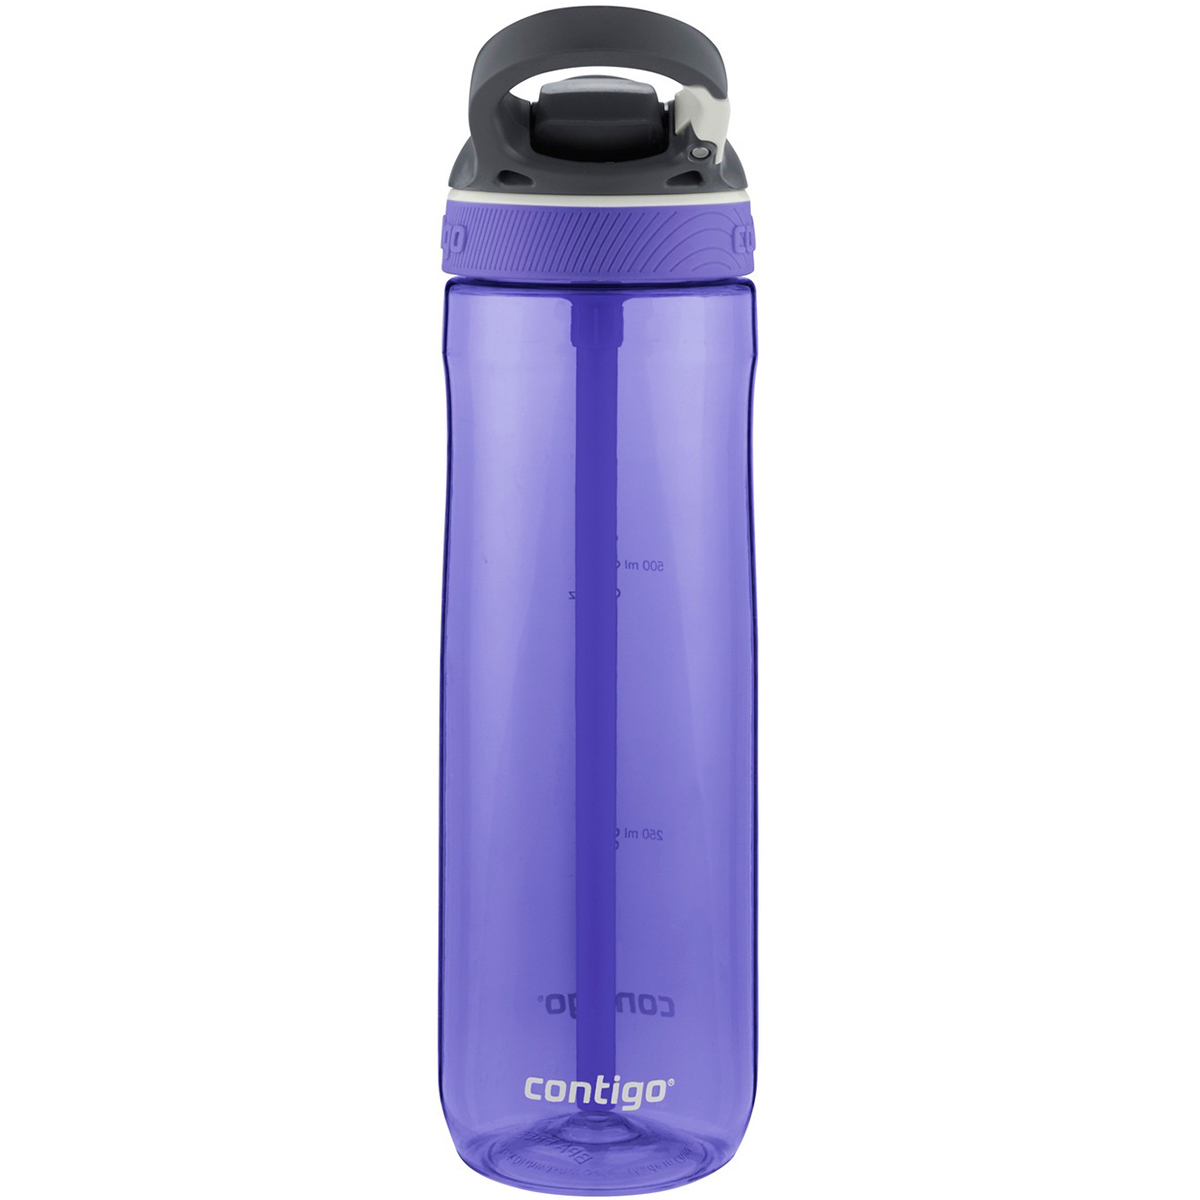 Contigo-24-oz-Ashland-Autospout-Water-Bottle Indexbild 7